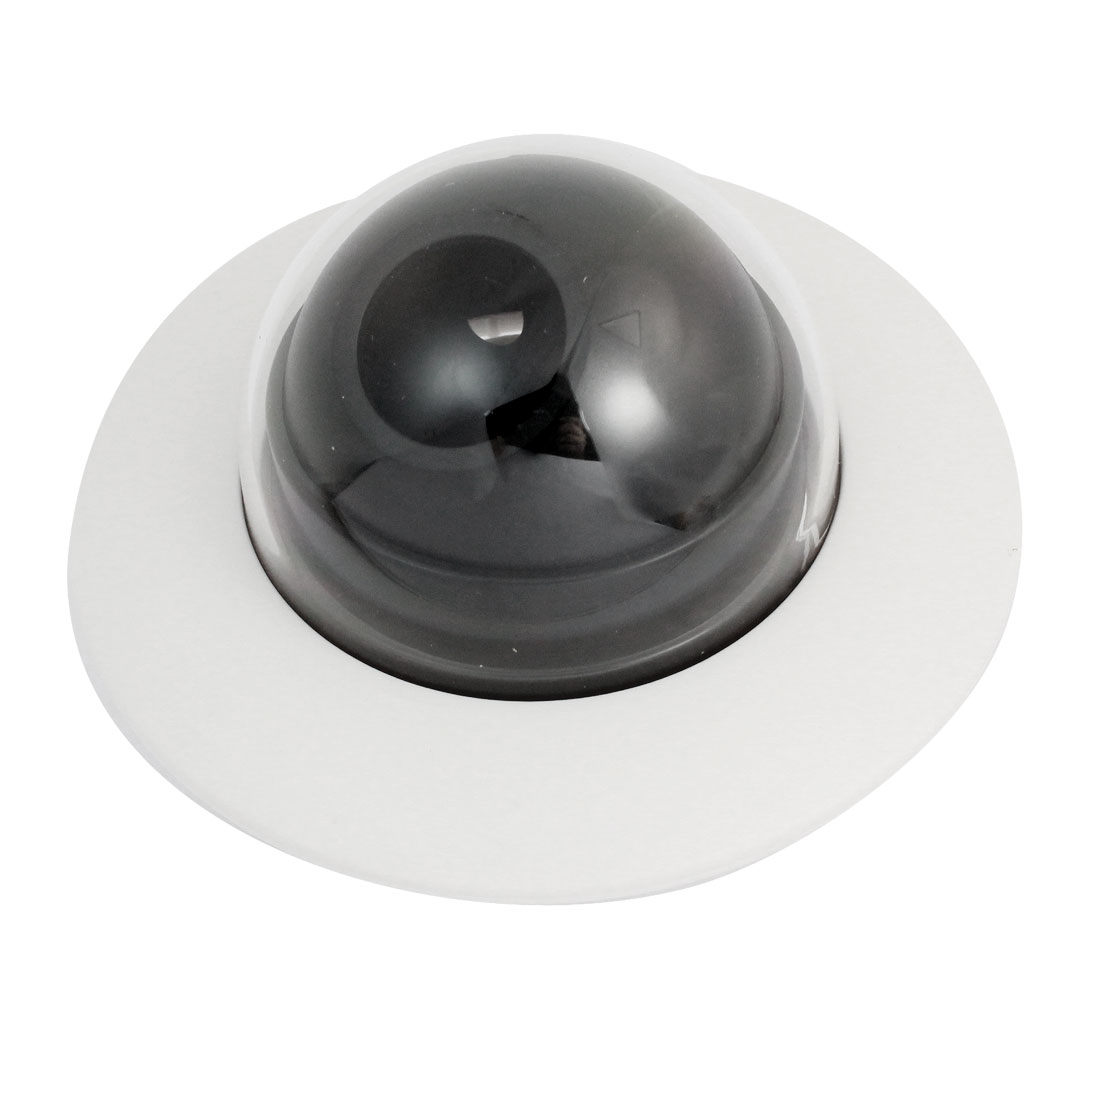 Flying Saucer Shaped White Plastic CCTV Dome Camera Housing Case